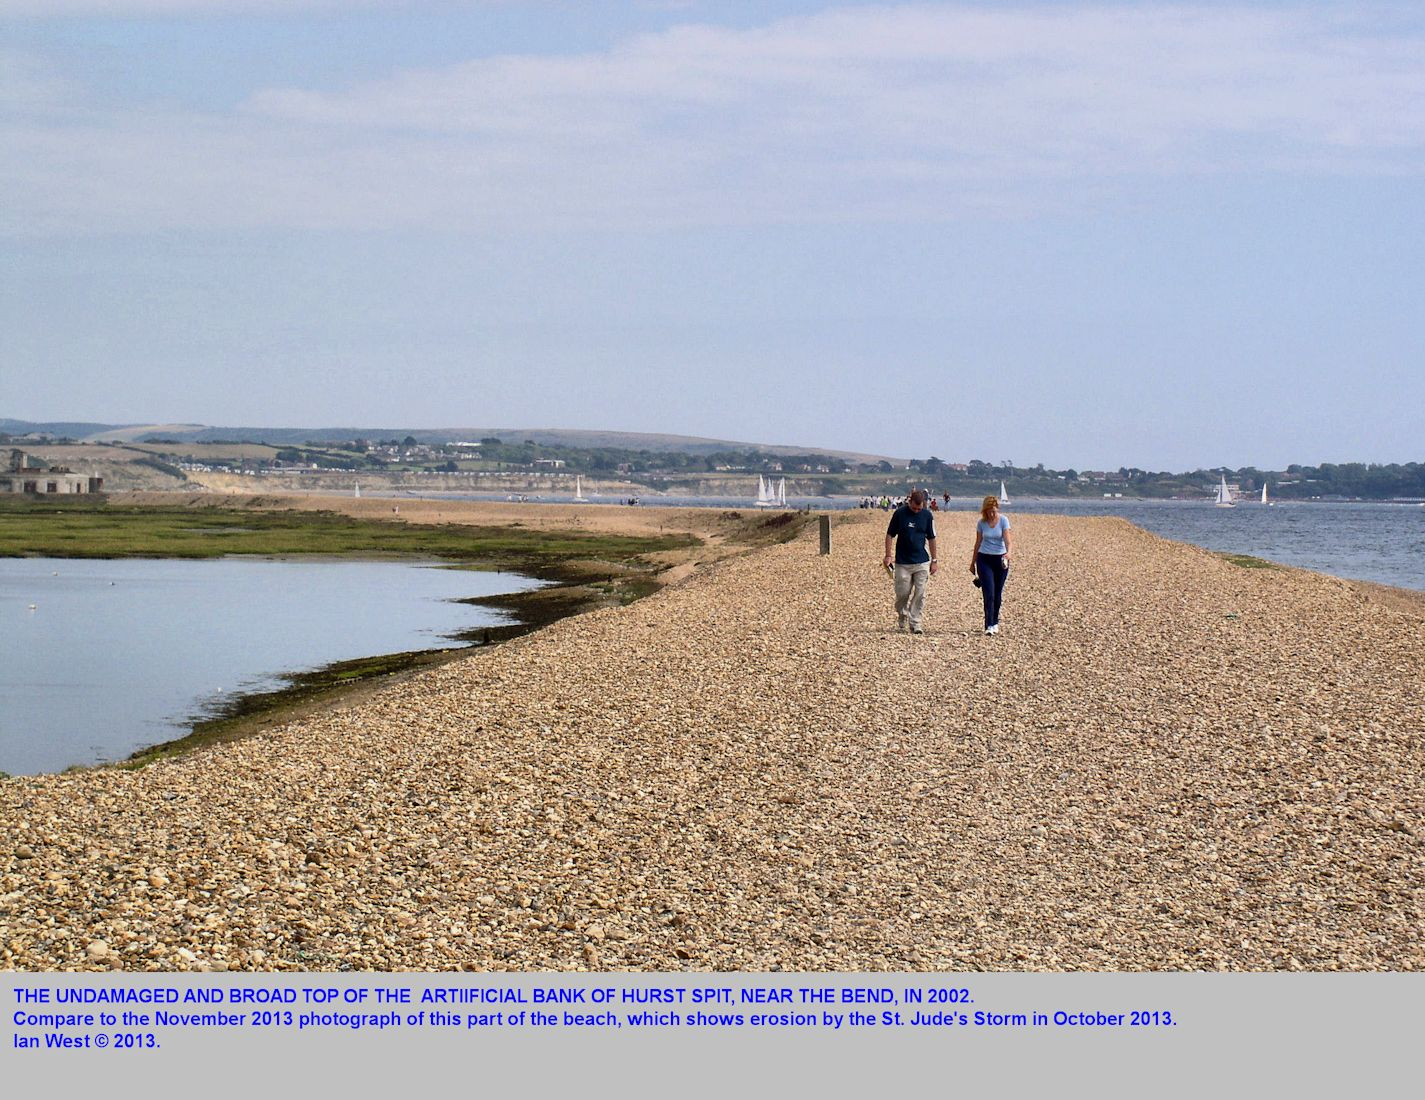 The bend in Hurst Spit, in 2002, before the top bank was reduced in width by storm erosion